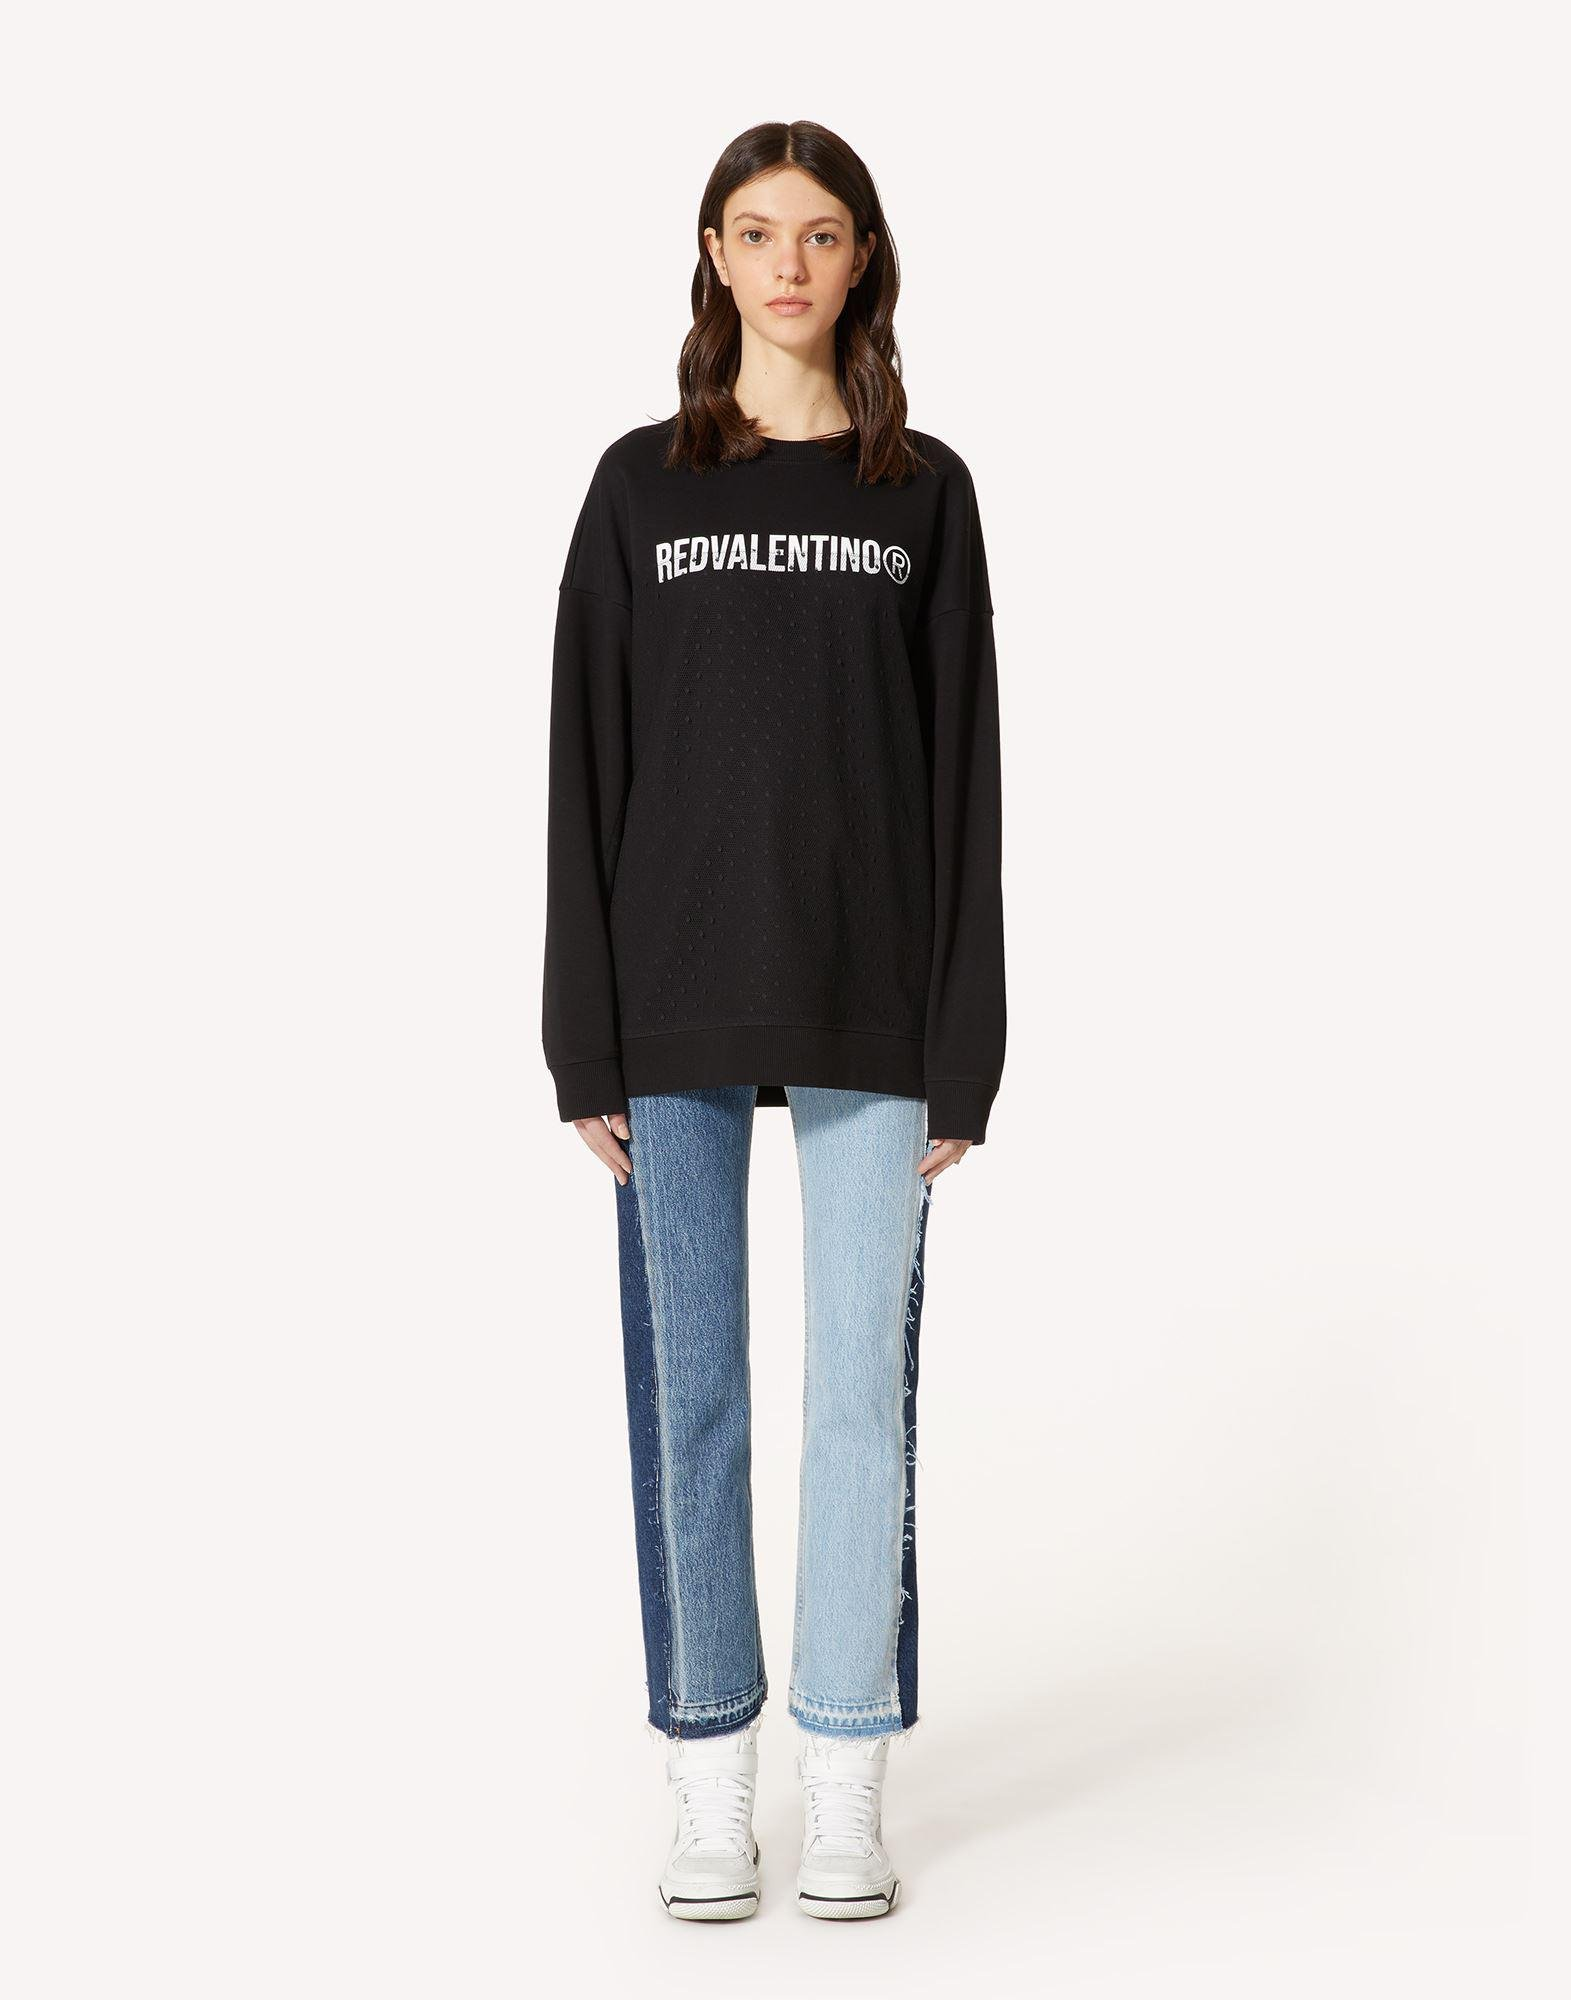 SWEATSHIRT WITH REDVALENTINO R PRINT AND POINT D'ESPRIT TULLE